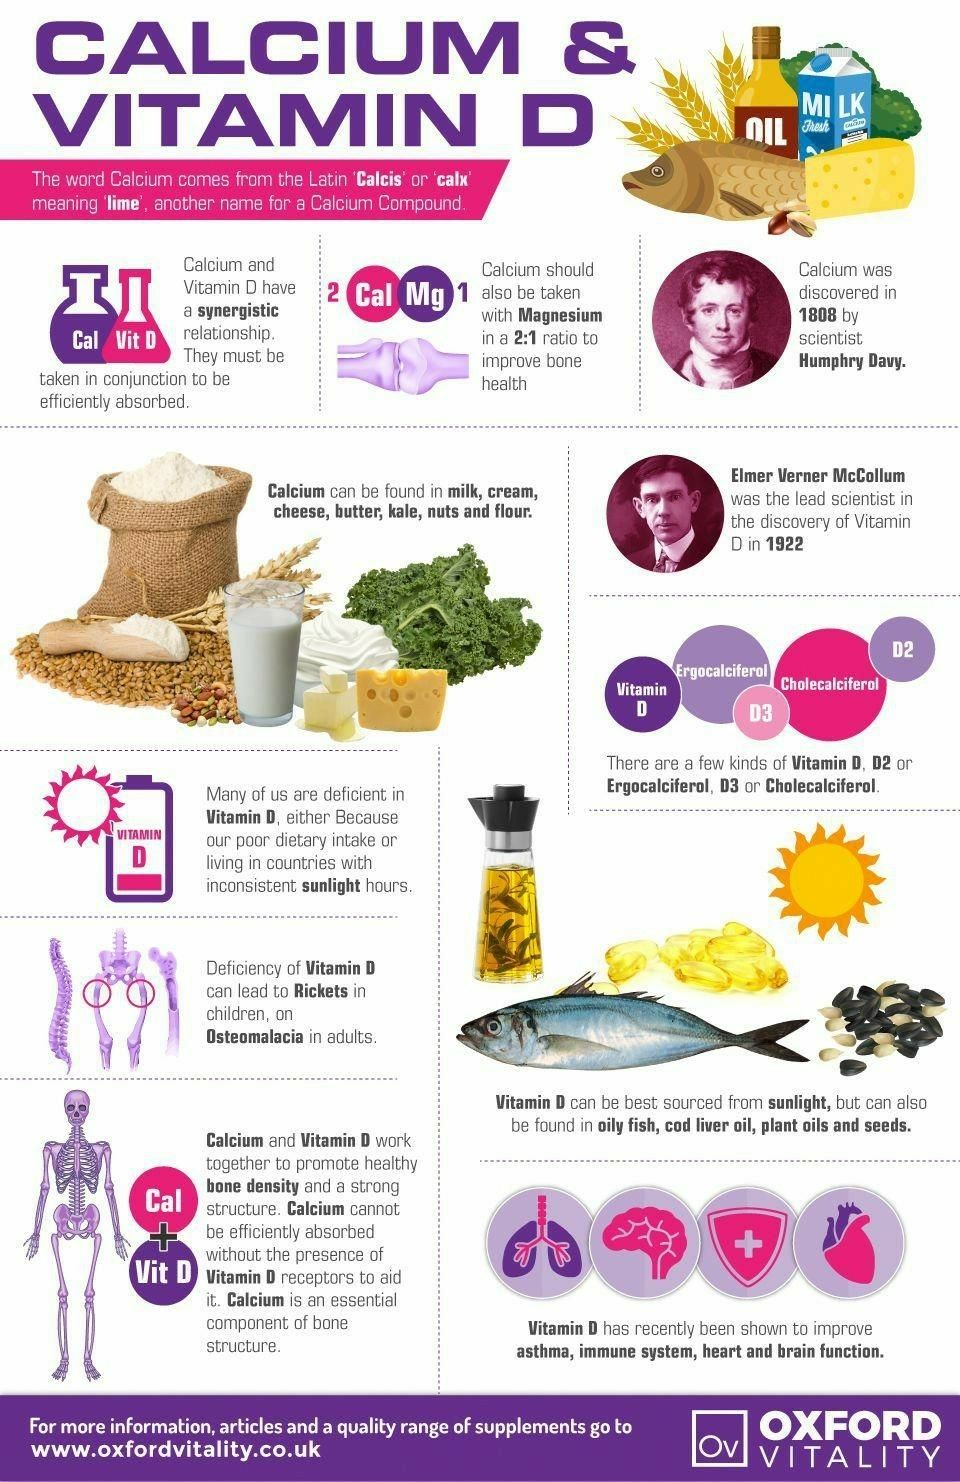 Pin by Seenujvs on Nutrition Calcium vitamins, Nutrition